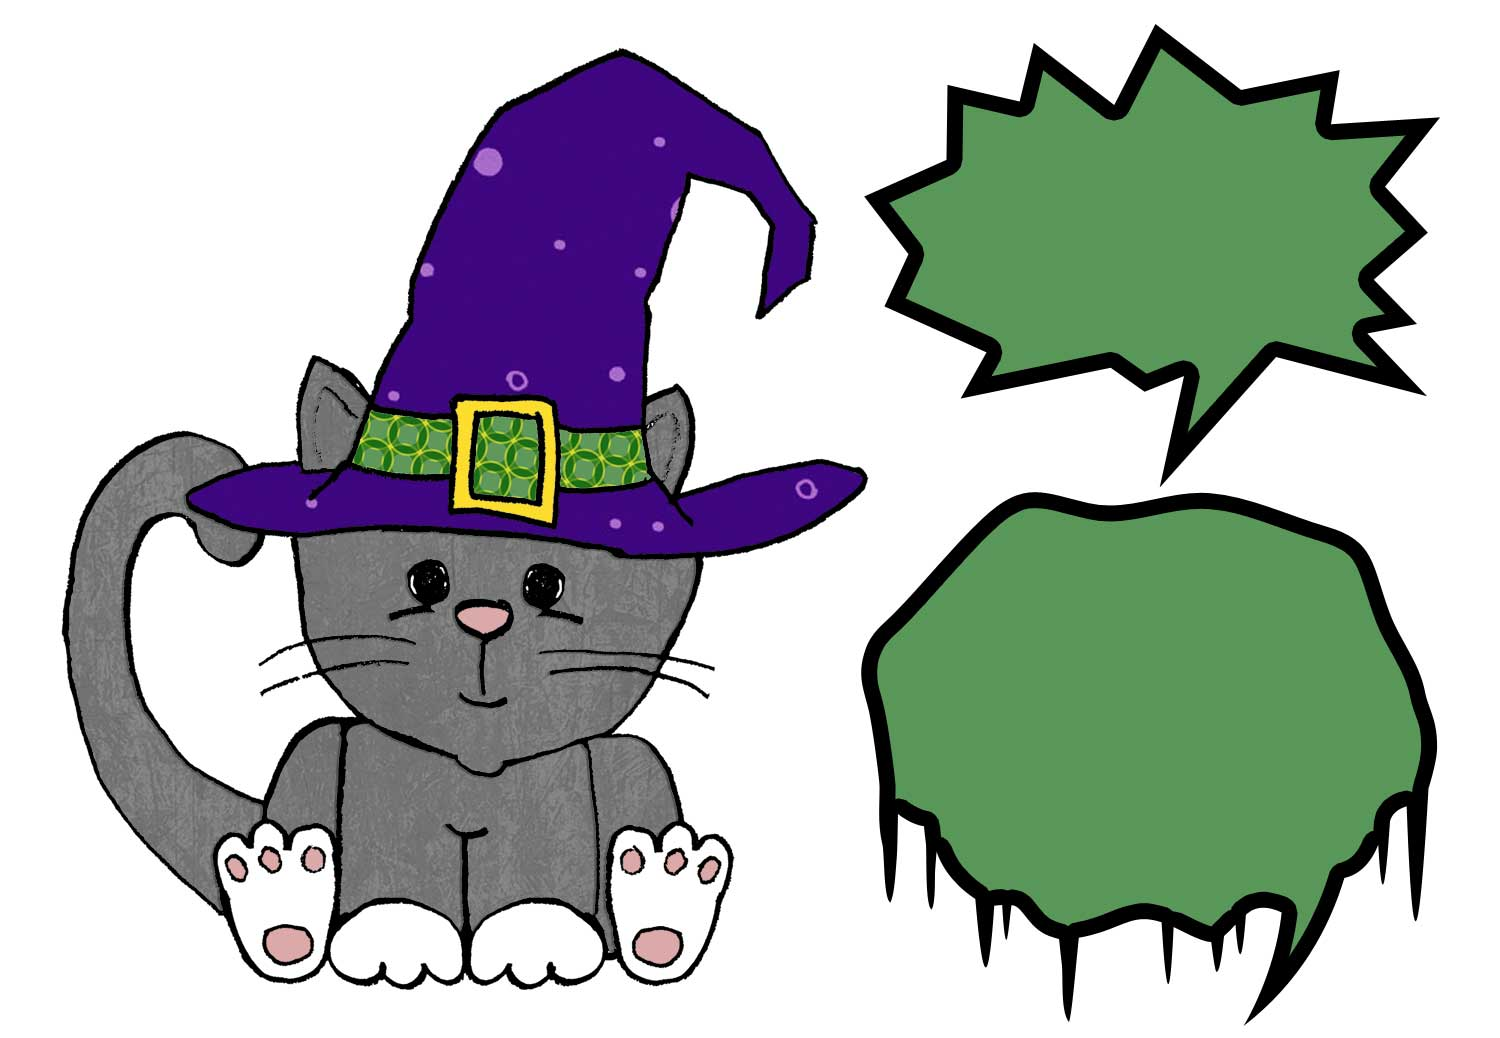 eri doodle designs and creations: Meow says the Halloween kitty